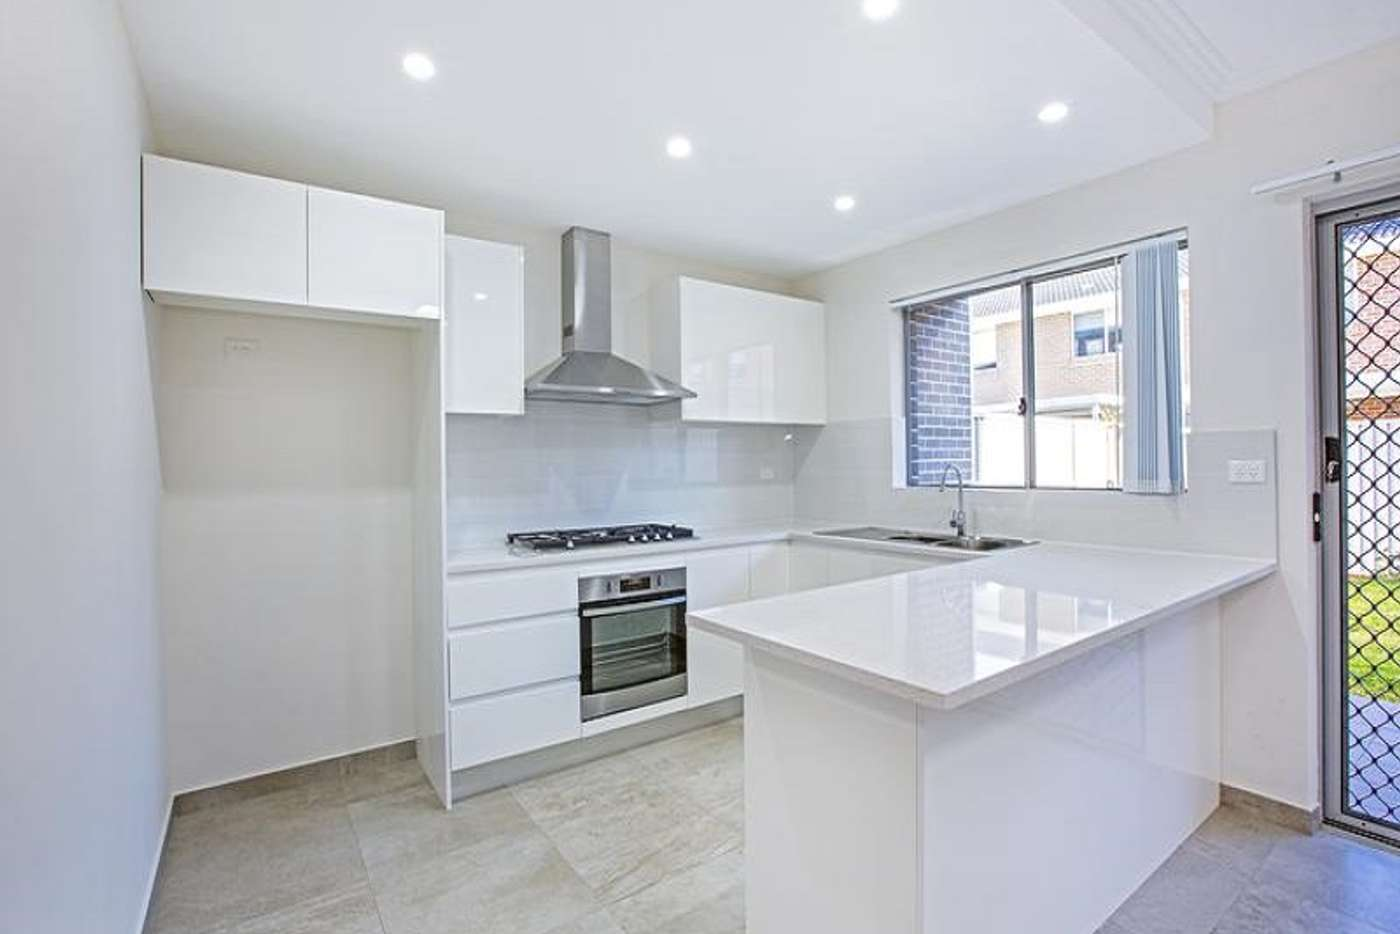 Main view of Homely townhouse listing, 8/20 Old Glenfield Road, Casula NSW 2170